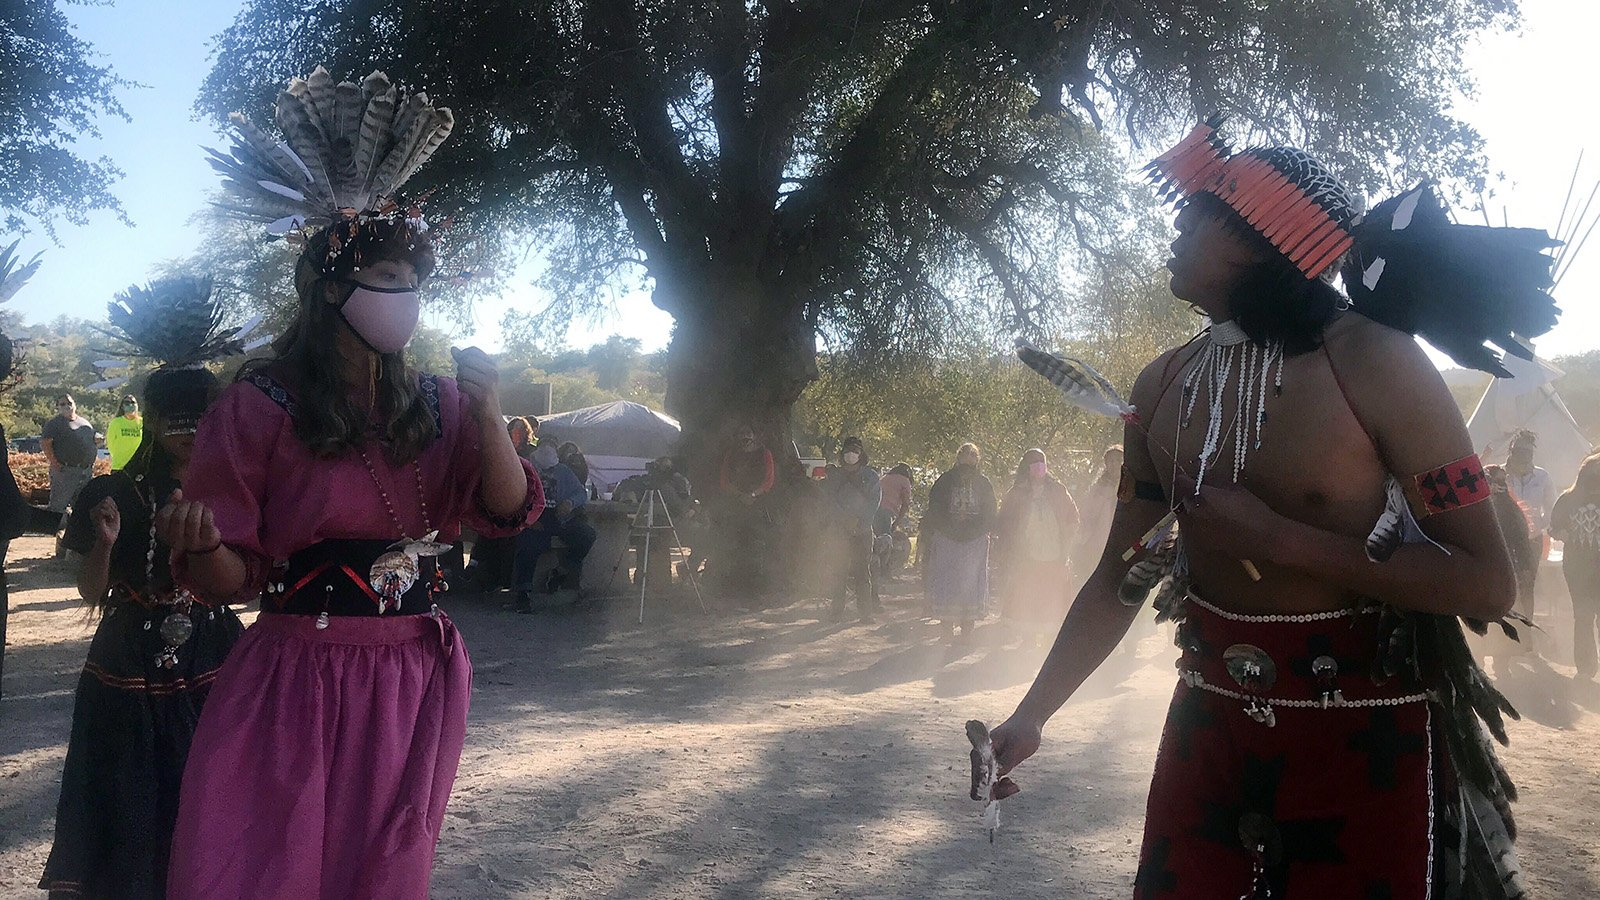 Waya Brown, from right, Gouyen Lopez-Brown and Lozen Lopez-Brown dance and bless the land at Oak Flat campground on Saturday, Feb. 27, 2021, in Arizona's Tonto National Forest, roughly 70 miles east of Phoenix. RNS photo by Alejandra Molina